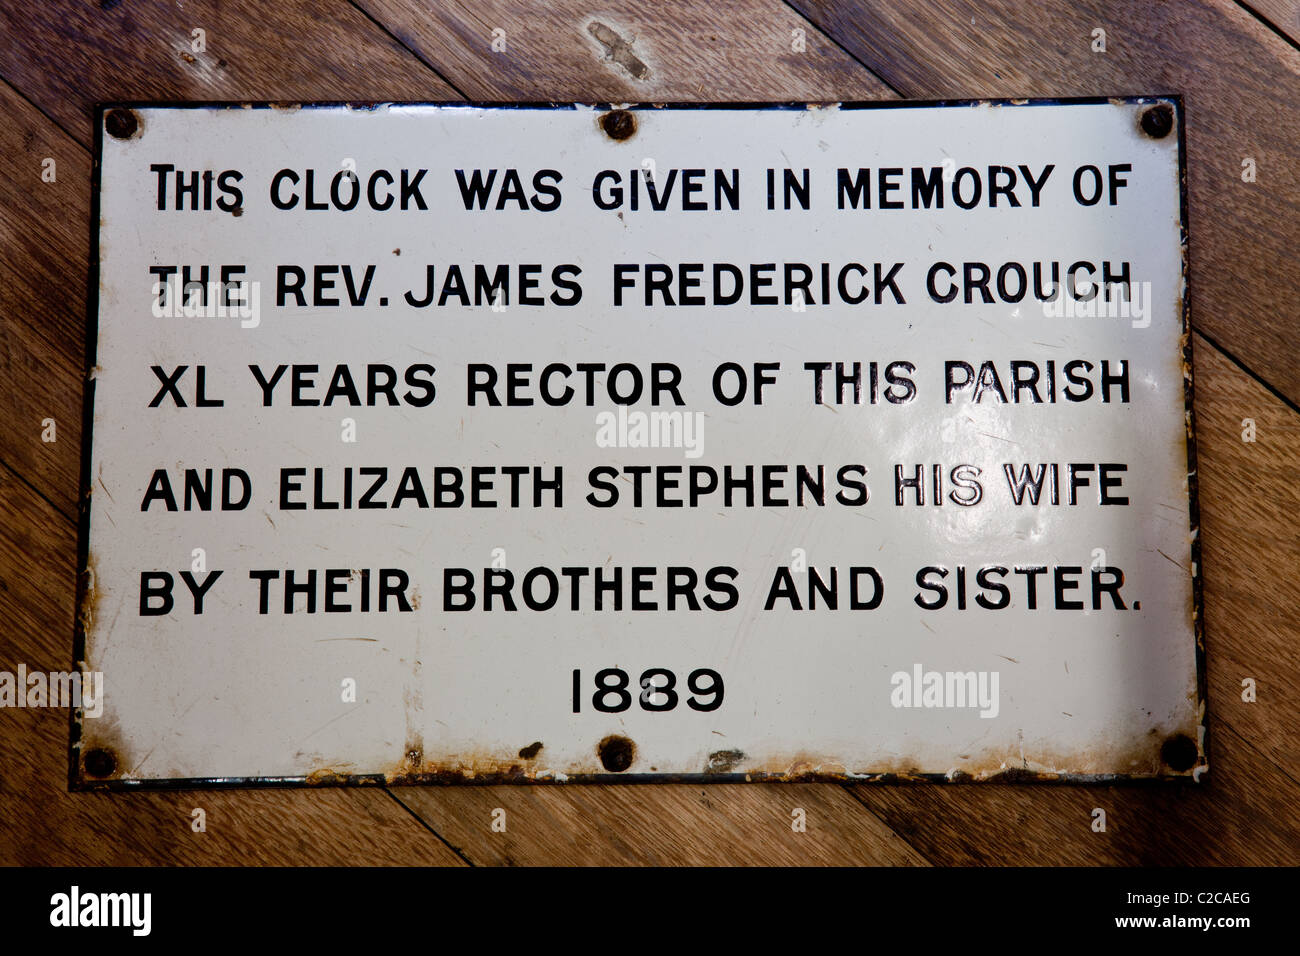 Plaque commemorating the clock inside the wooden clock tower of St Mary's Church, Pembridge, Herefordshire - Stock Image